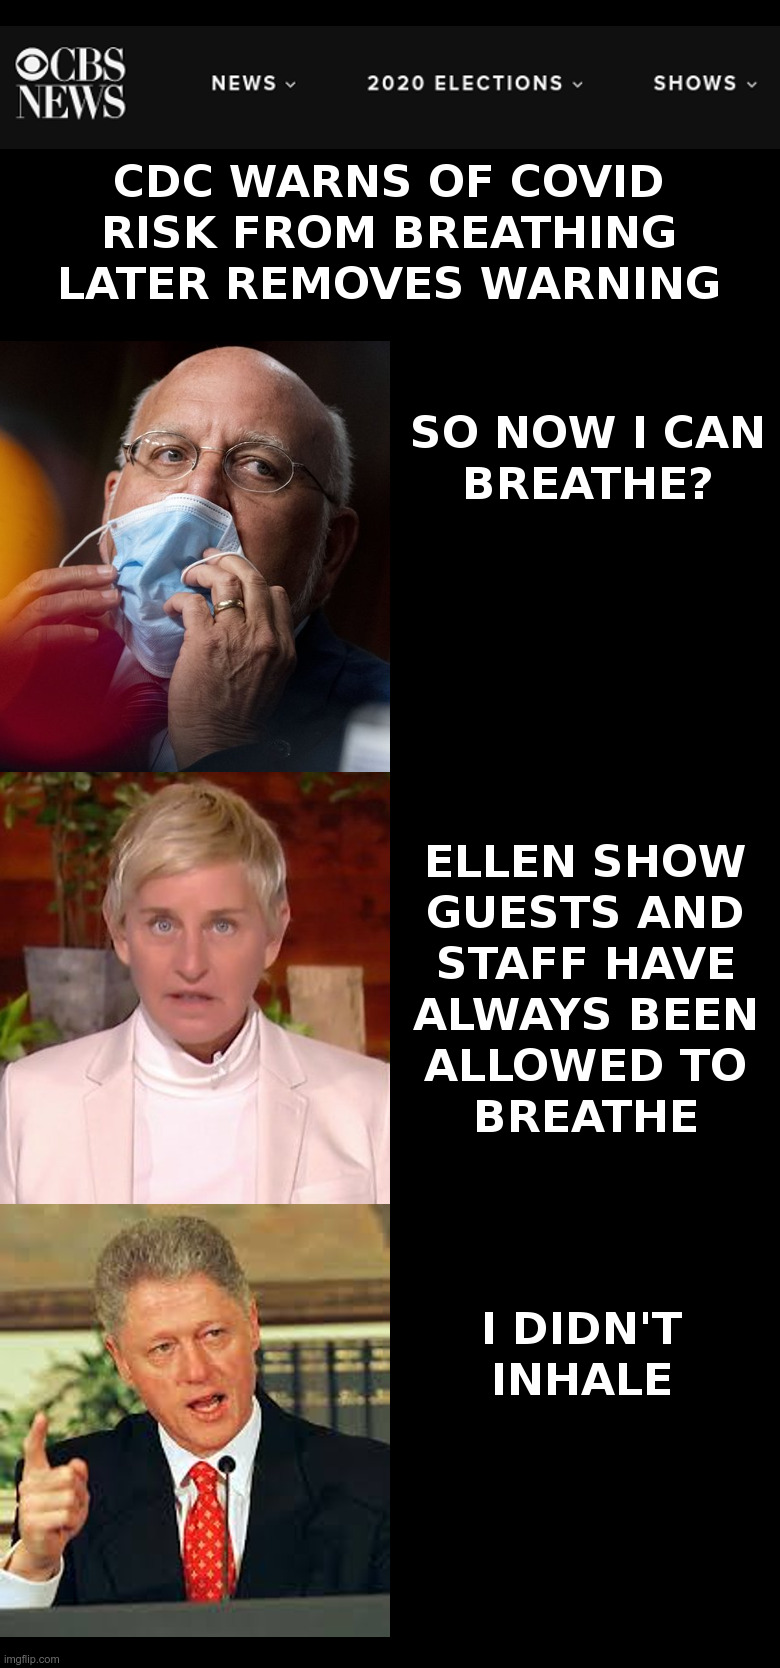 CDC Warns Breathing Can Be A Covid Risk | image tagged in cdc,covid,breathe,coronavirus,lockdown,forever | made w/ Imgflip meme maker